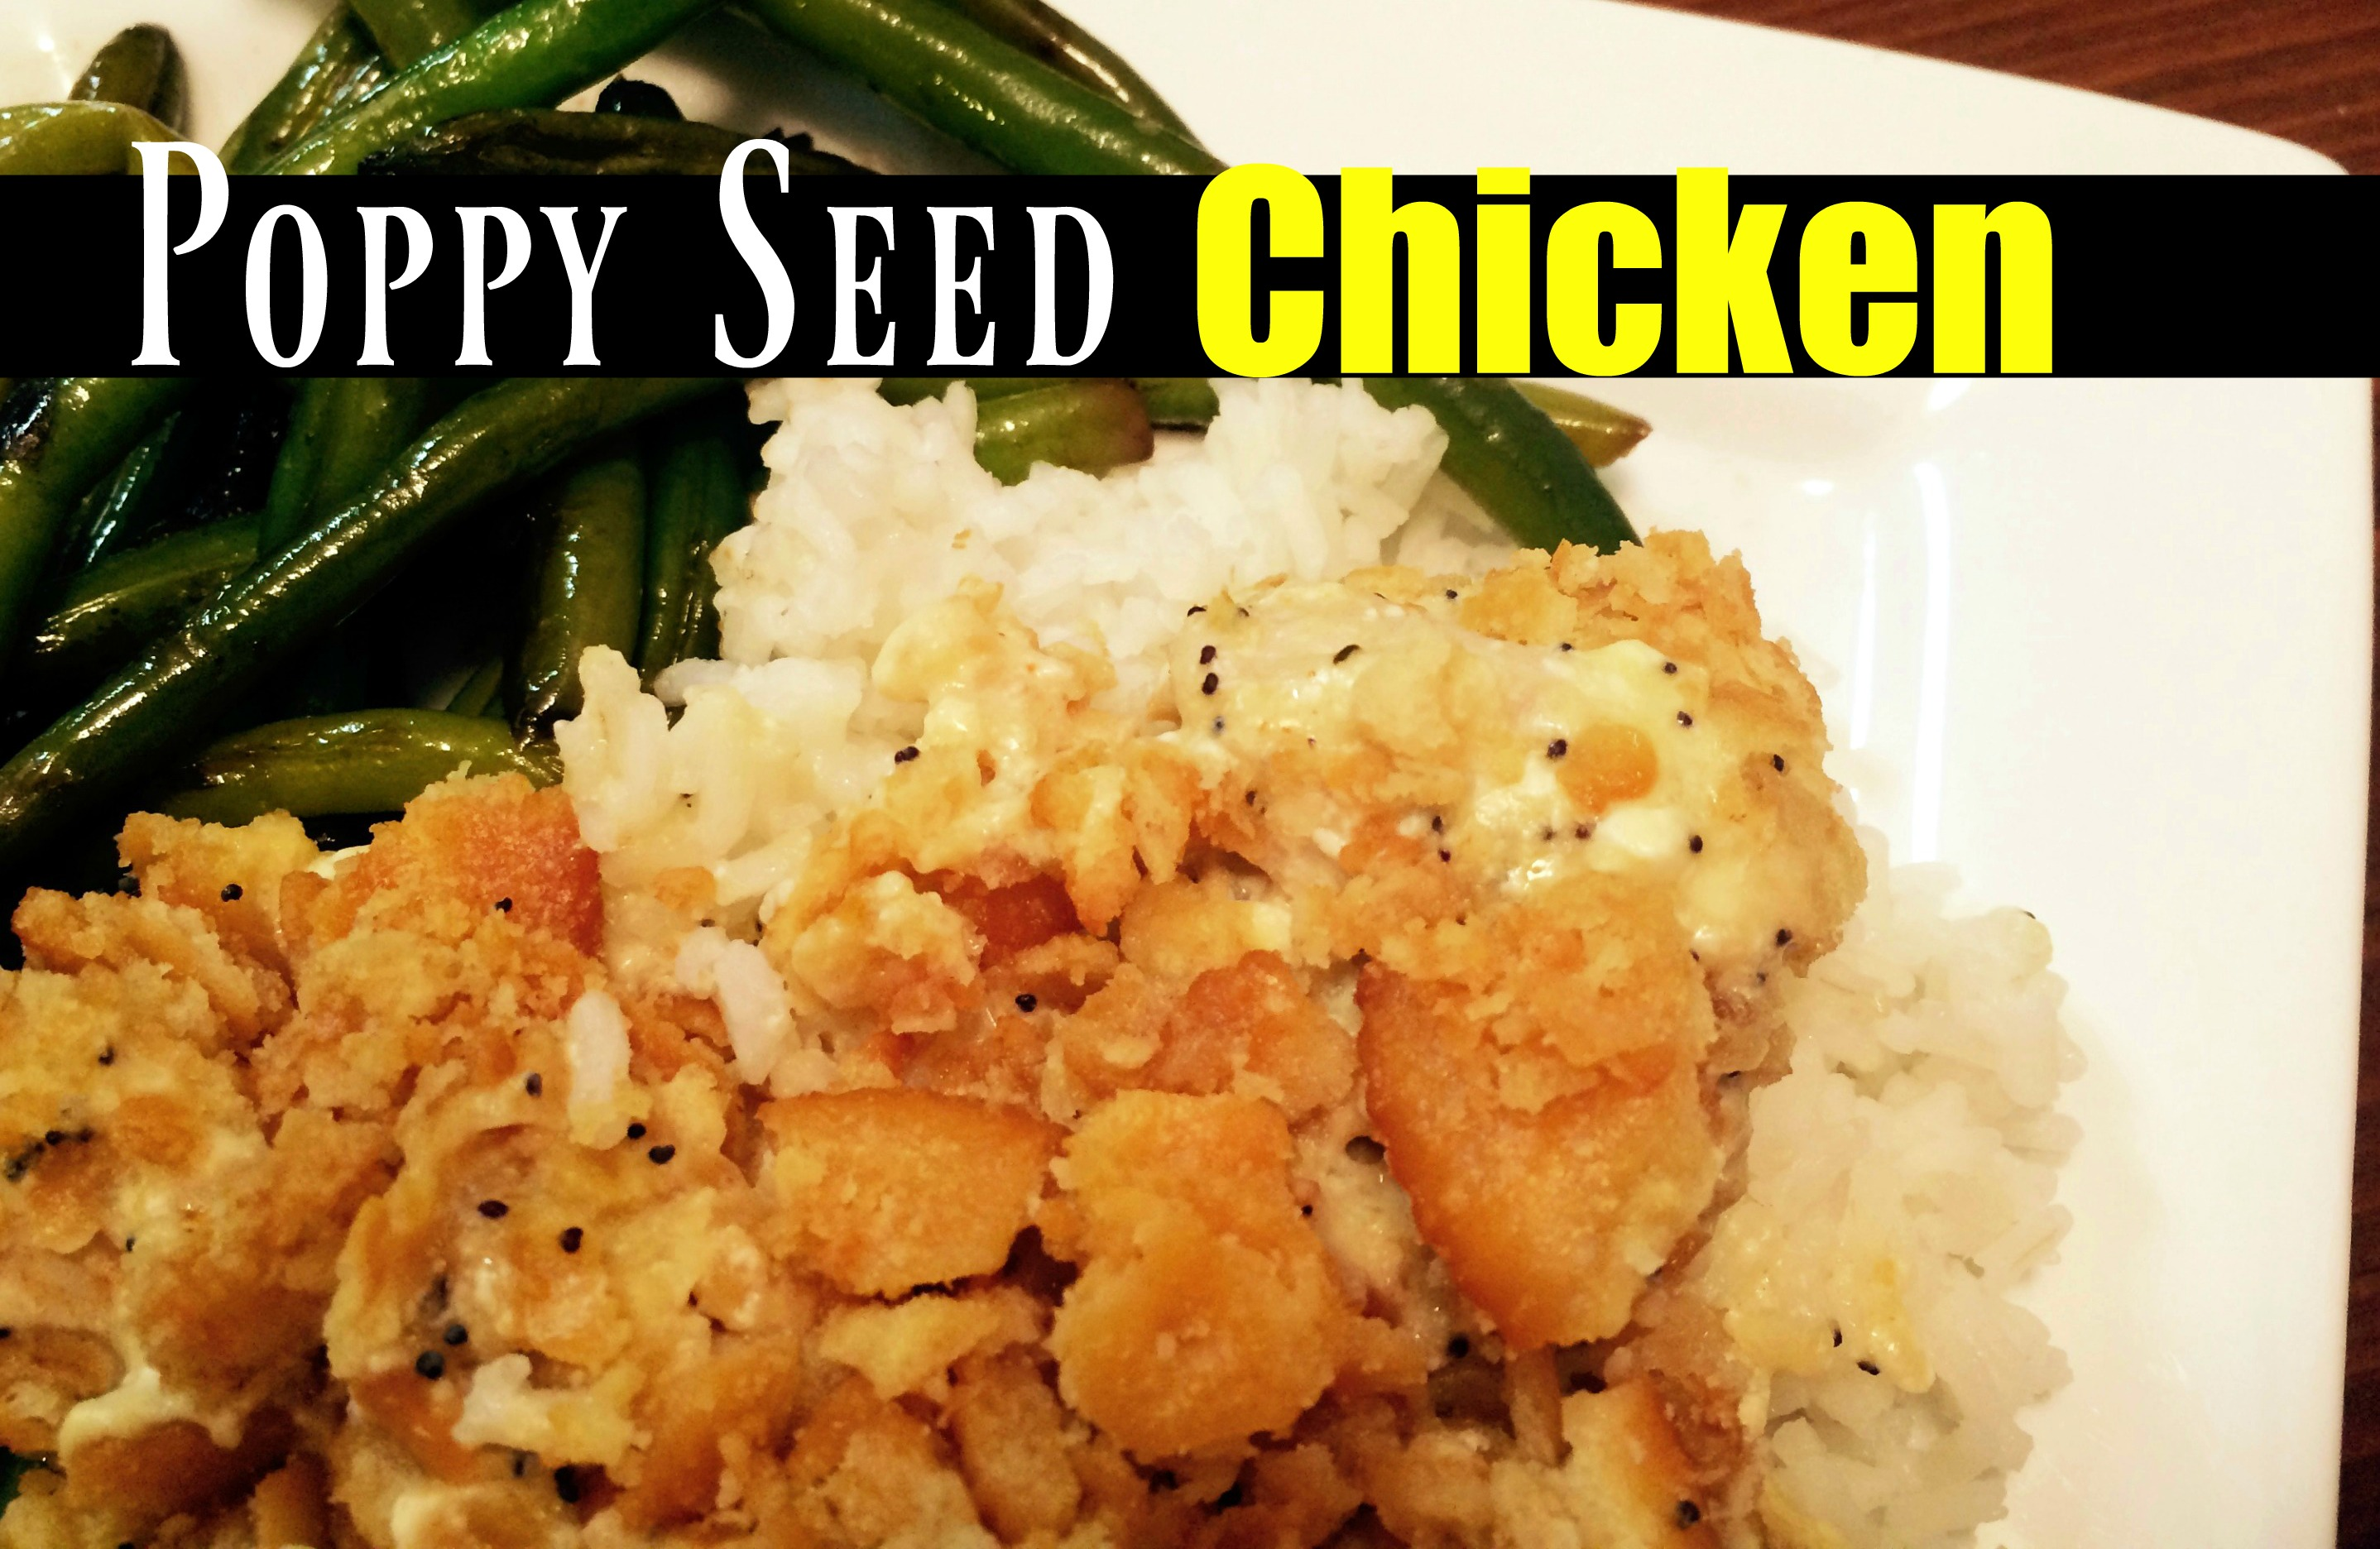 Poppy Seed Chicken